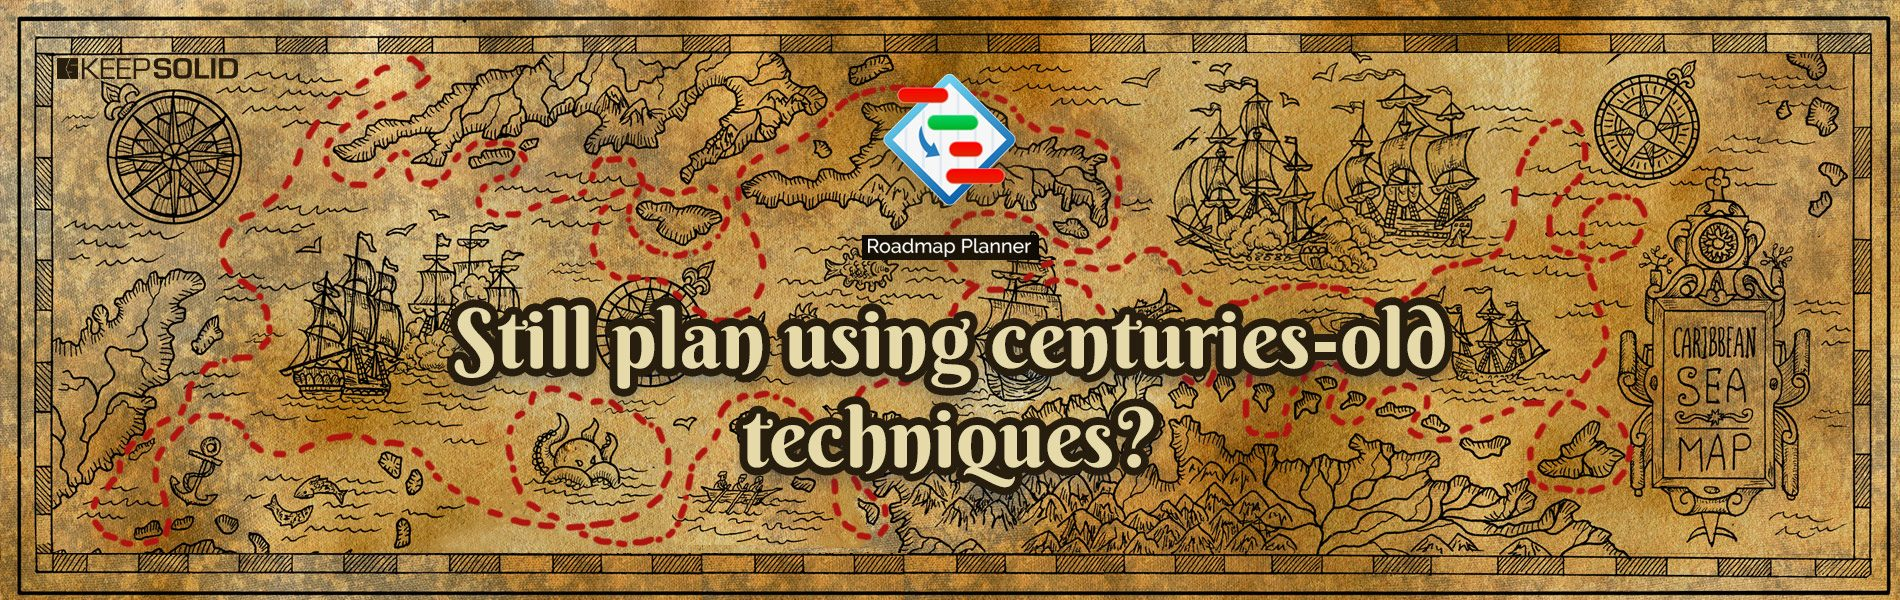 Strategy planning shouldn't be like using an old map of the with decorative and fantasy elements, pirate sailing ships, and a plain compass